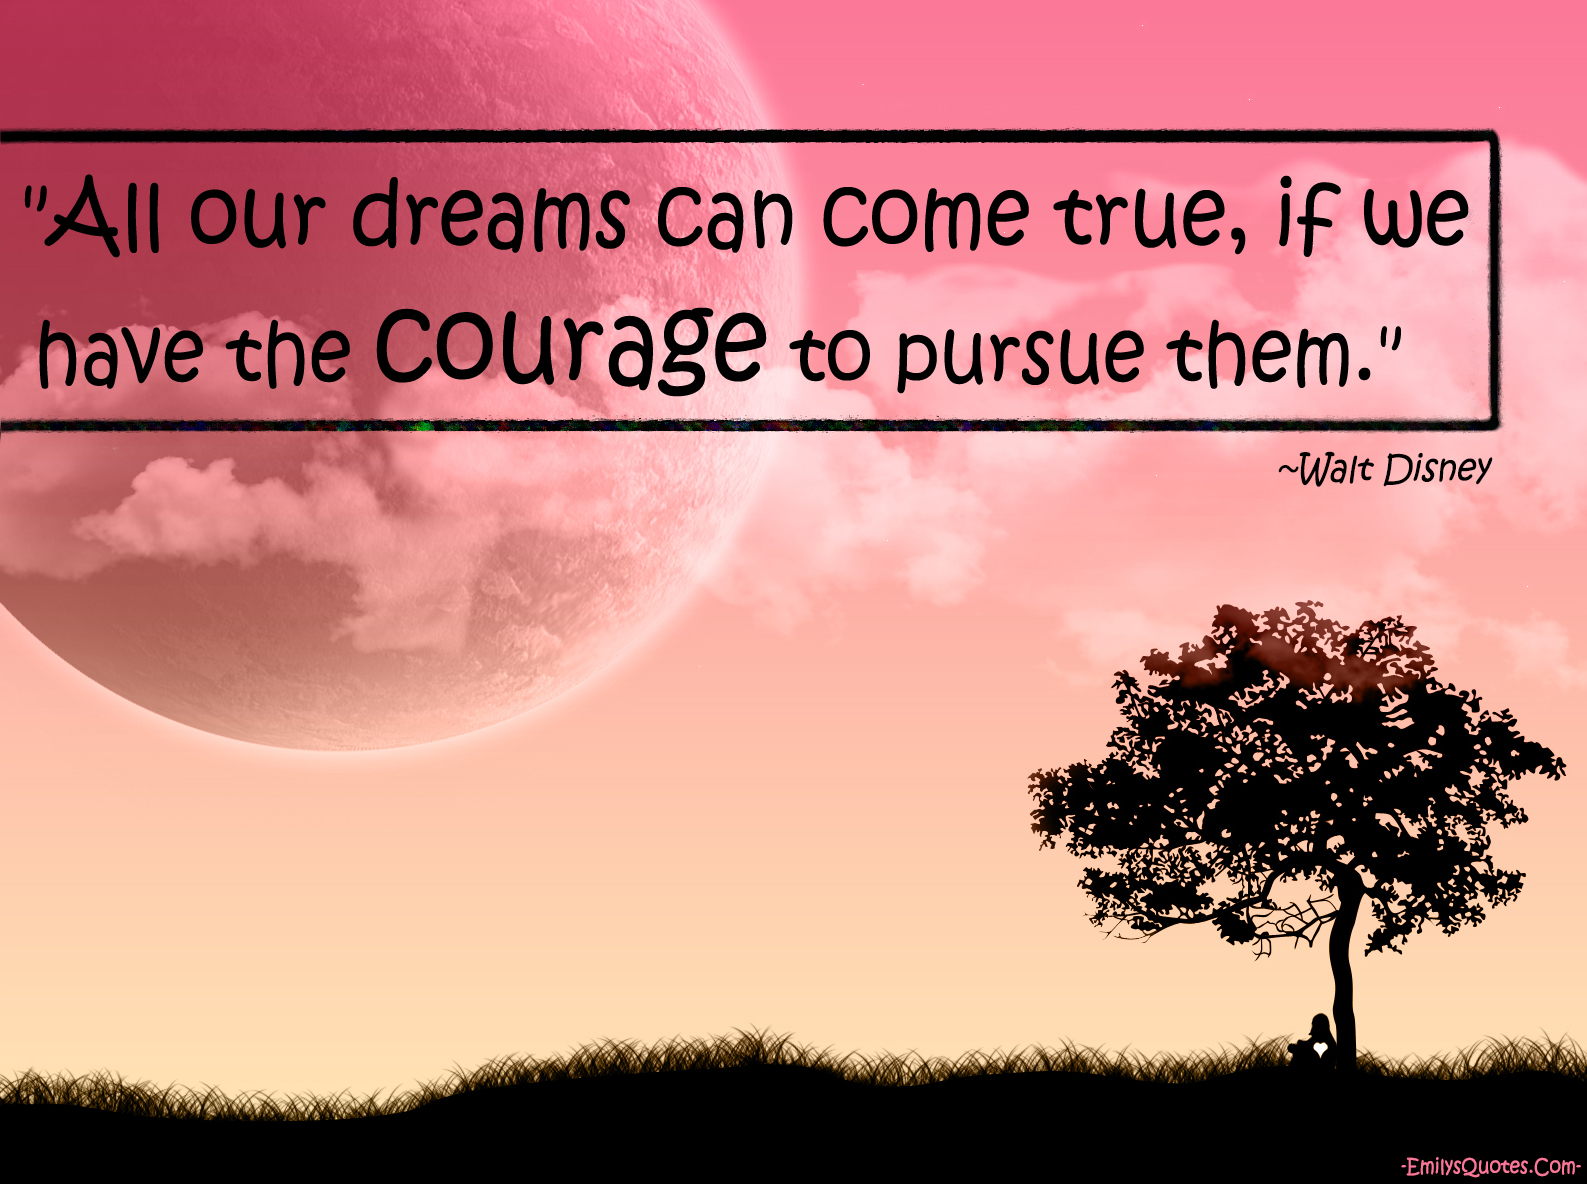 Quotes Courage Amazing All Our Dreams Can Come True If We Have The Courage To Pursue